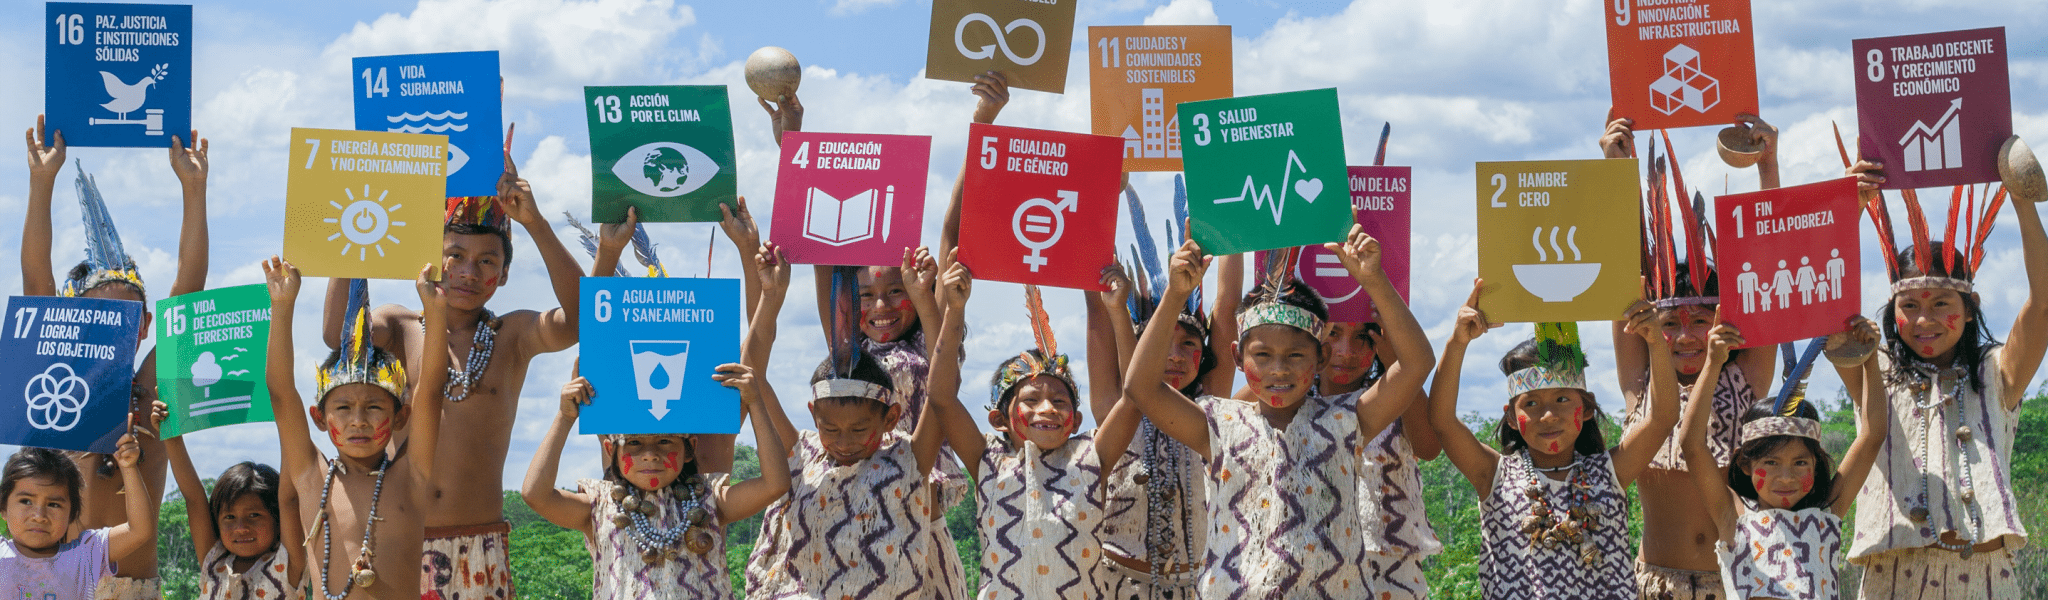 The Sustainable Development Agenda